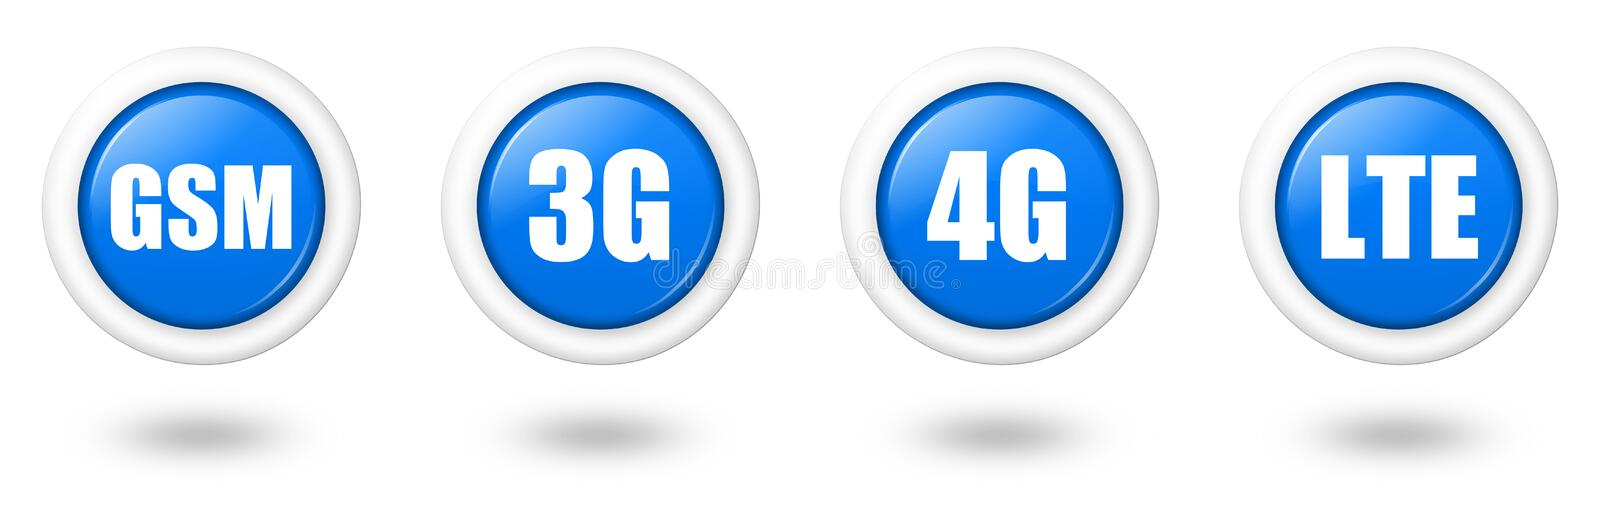 Blue LTE, 4G, 3G and GSM telecommunication icon se royalty free illustration